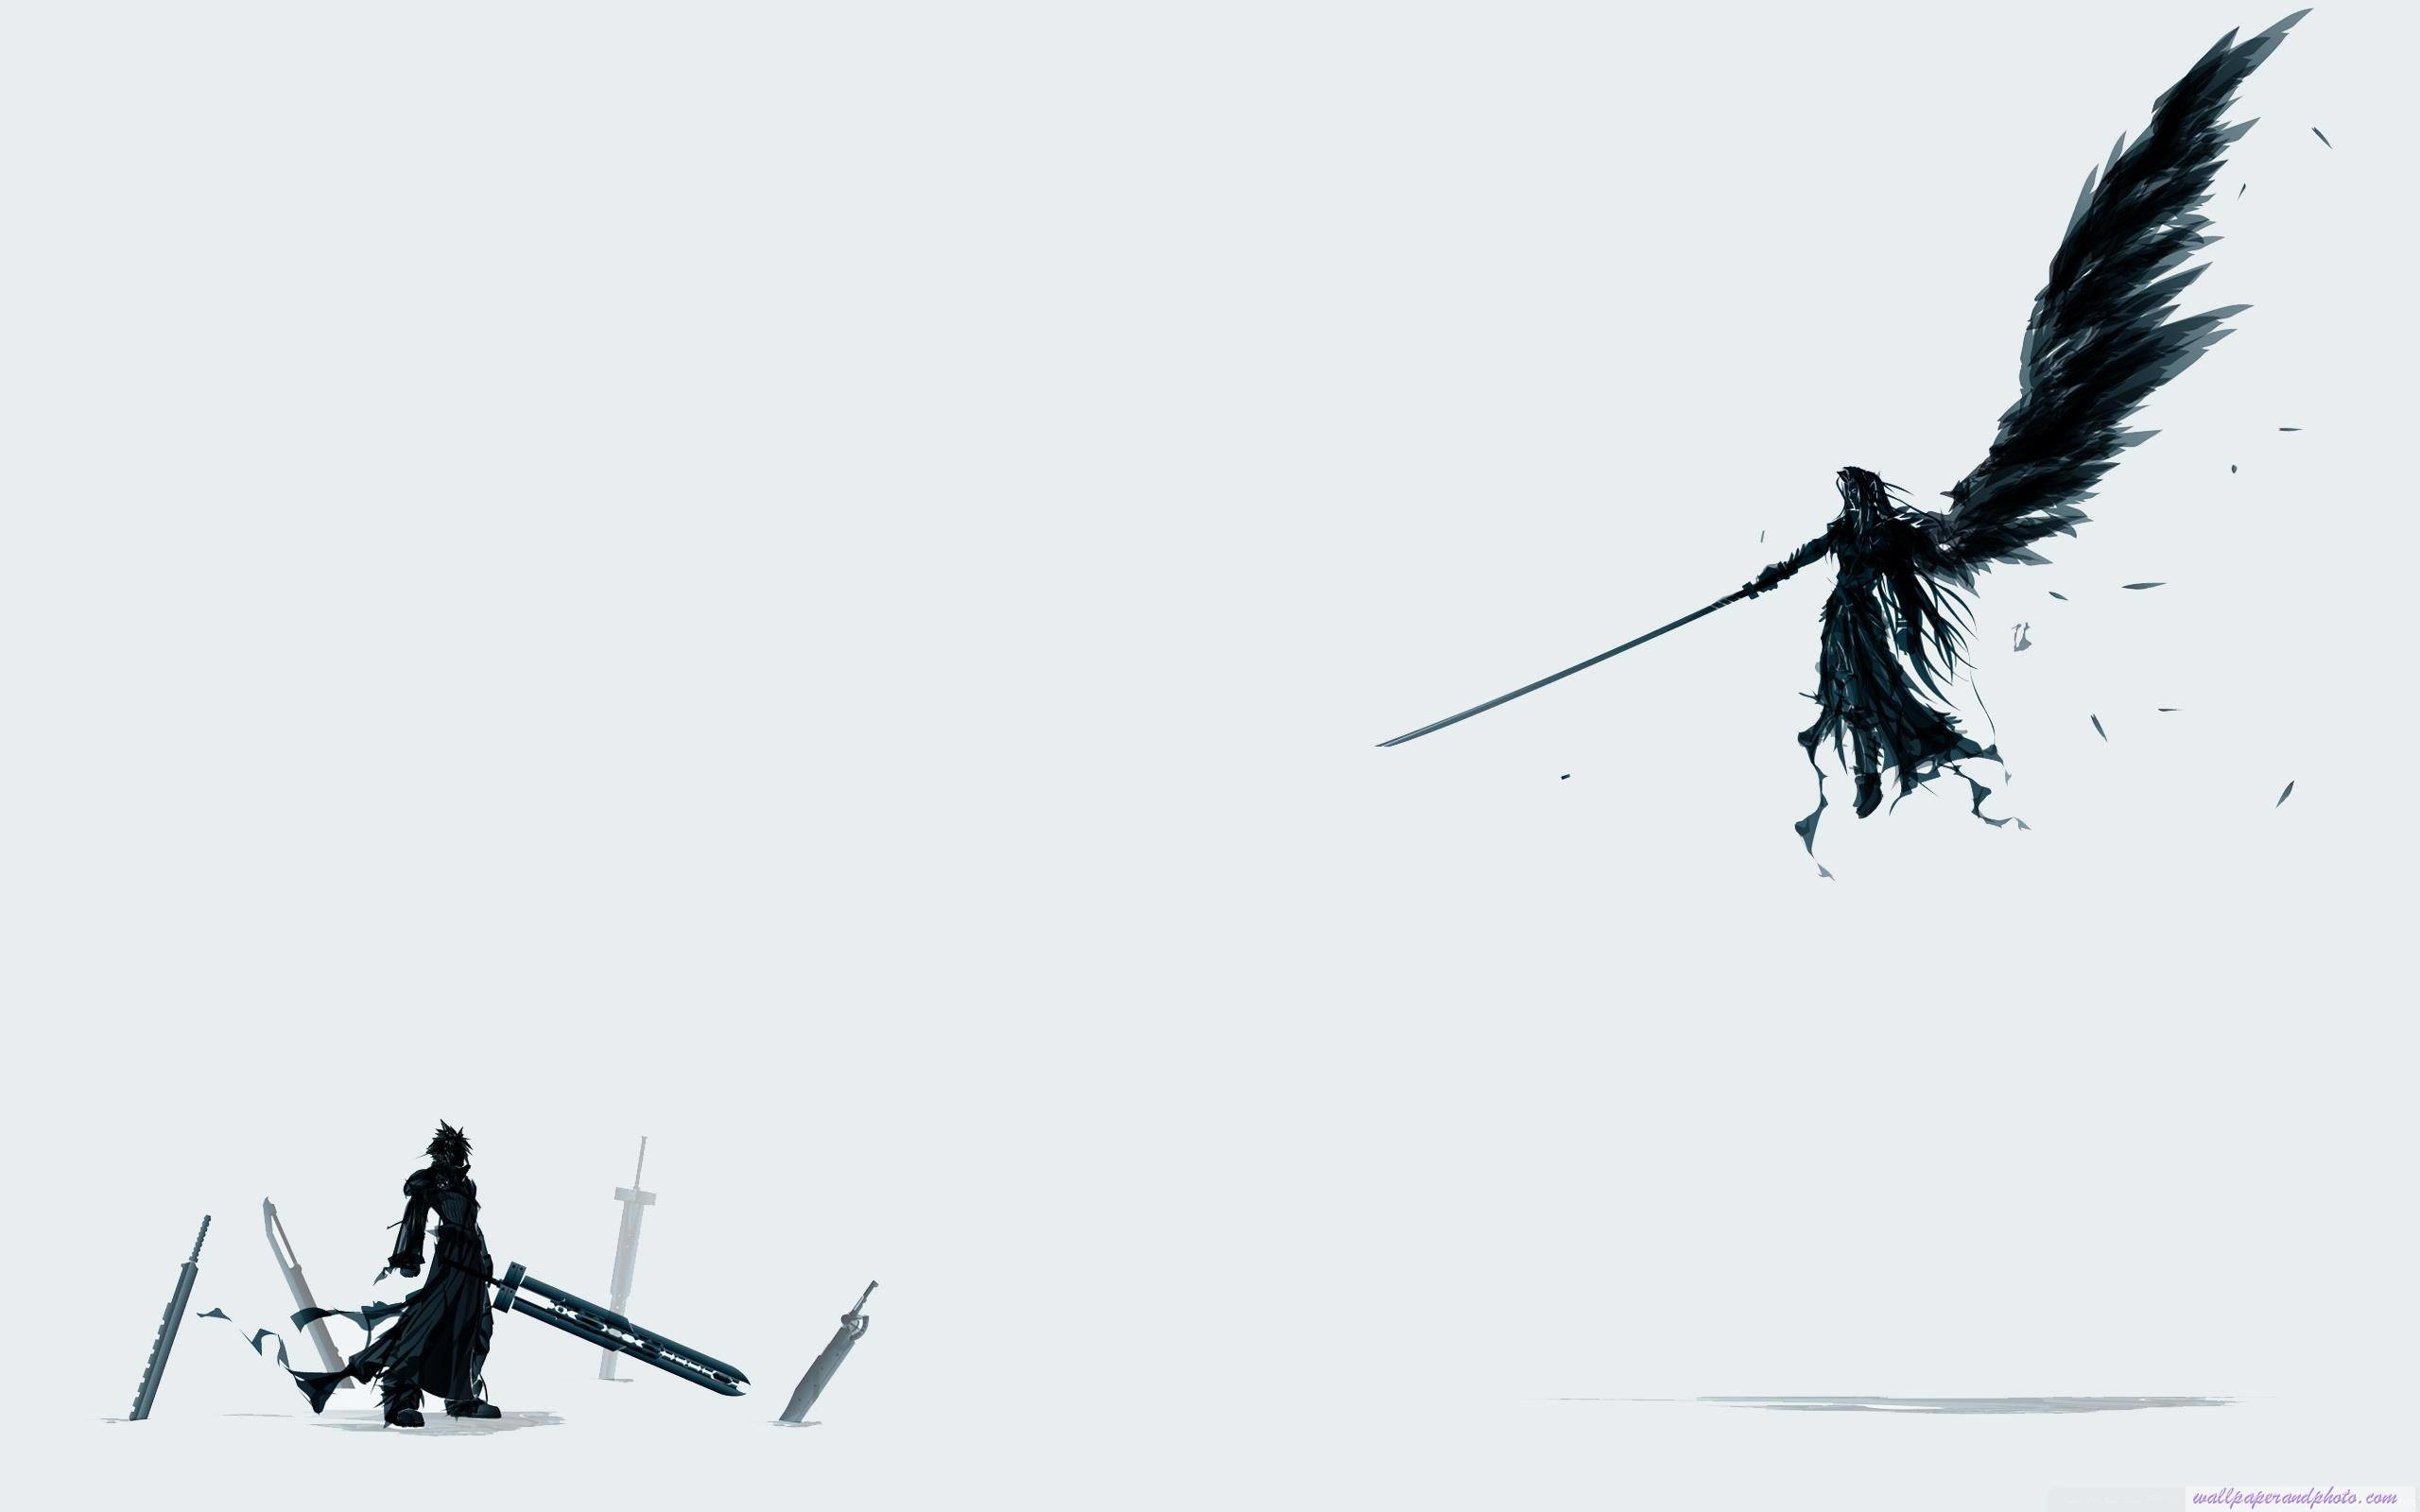 Dual Monitor Anime Wallpapers High Quality Resolution